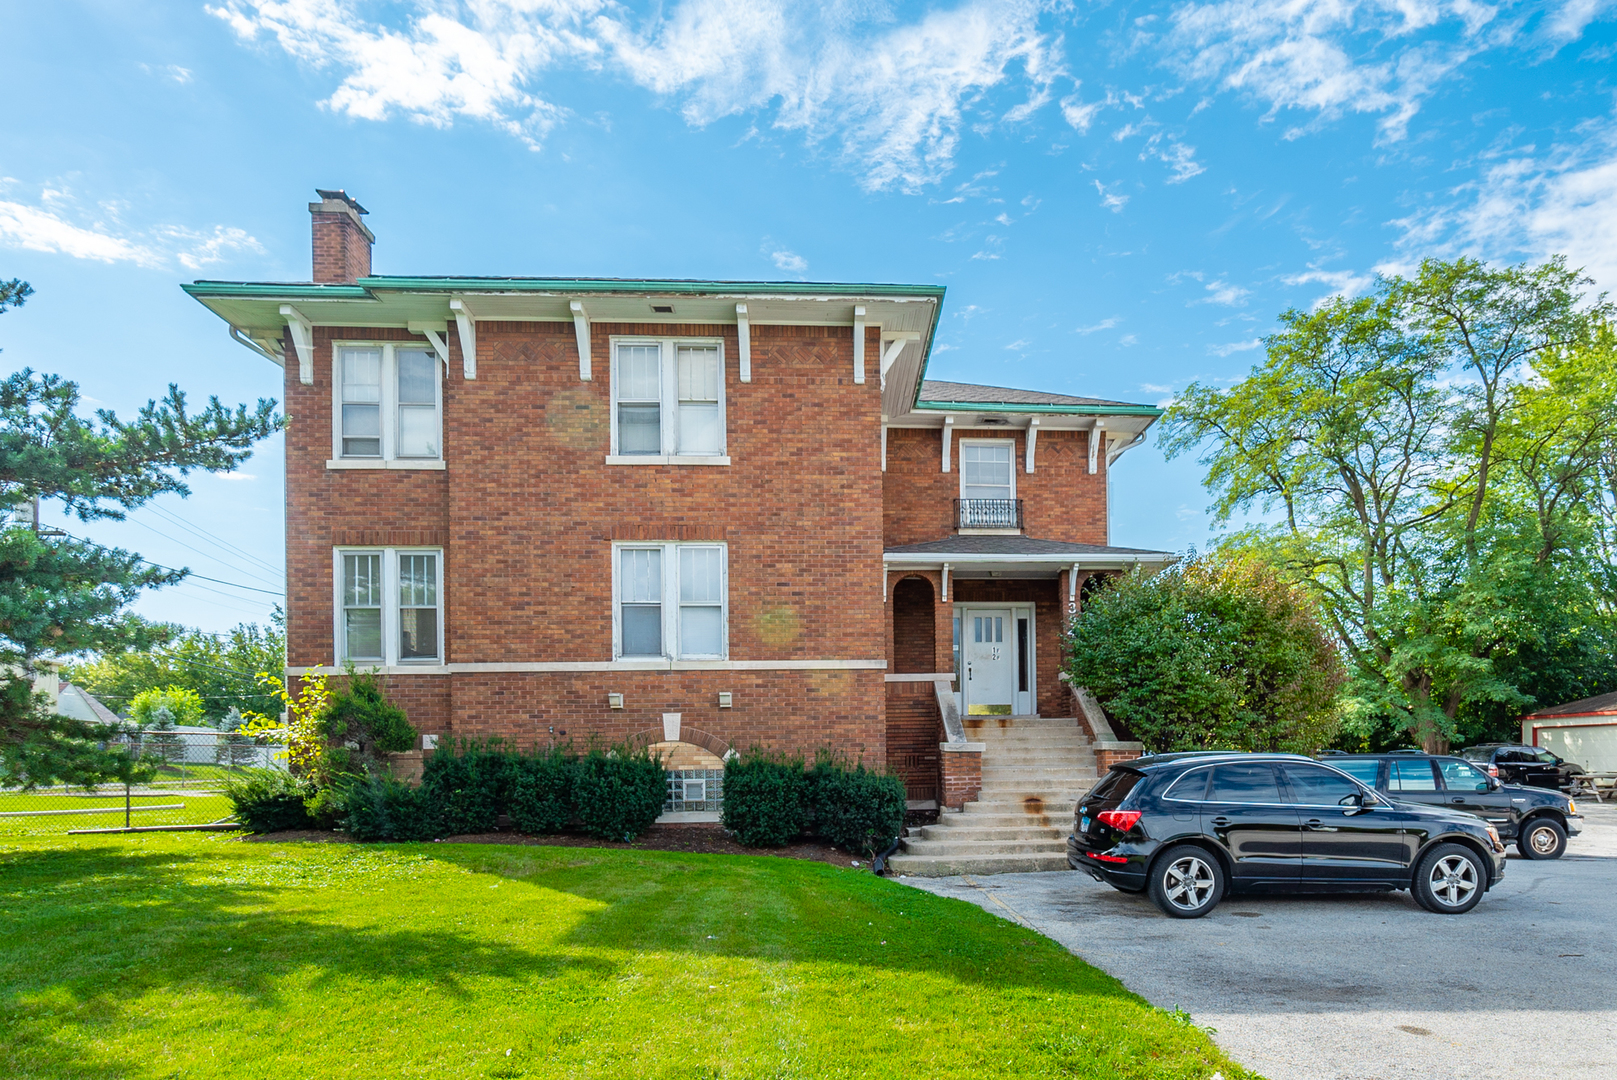 394 Lincoln ,Chicago Heights, Illinois 60411